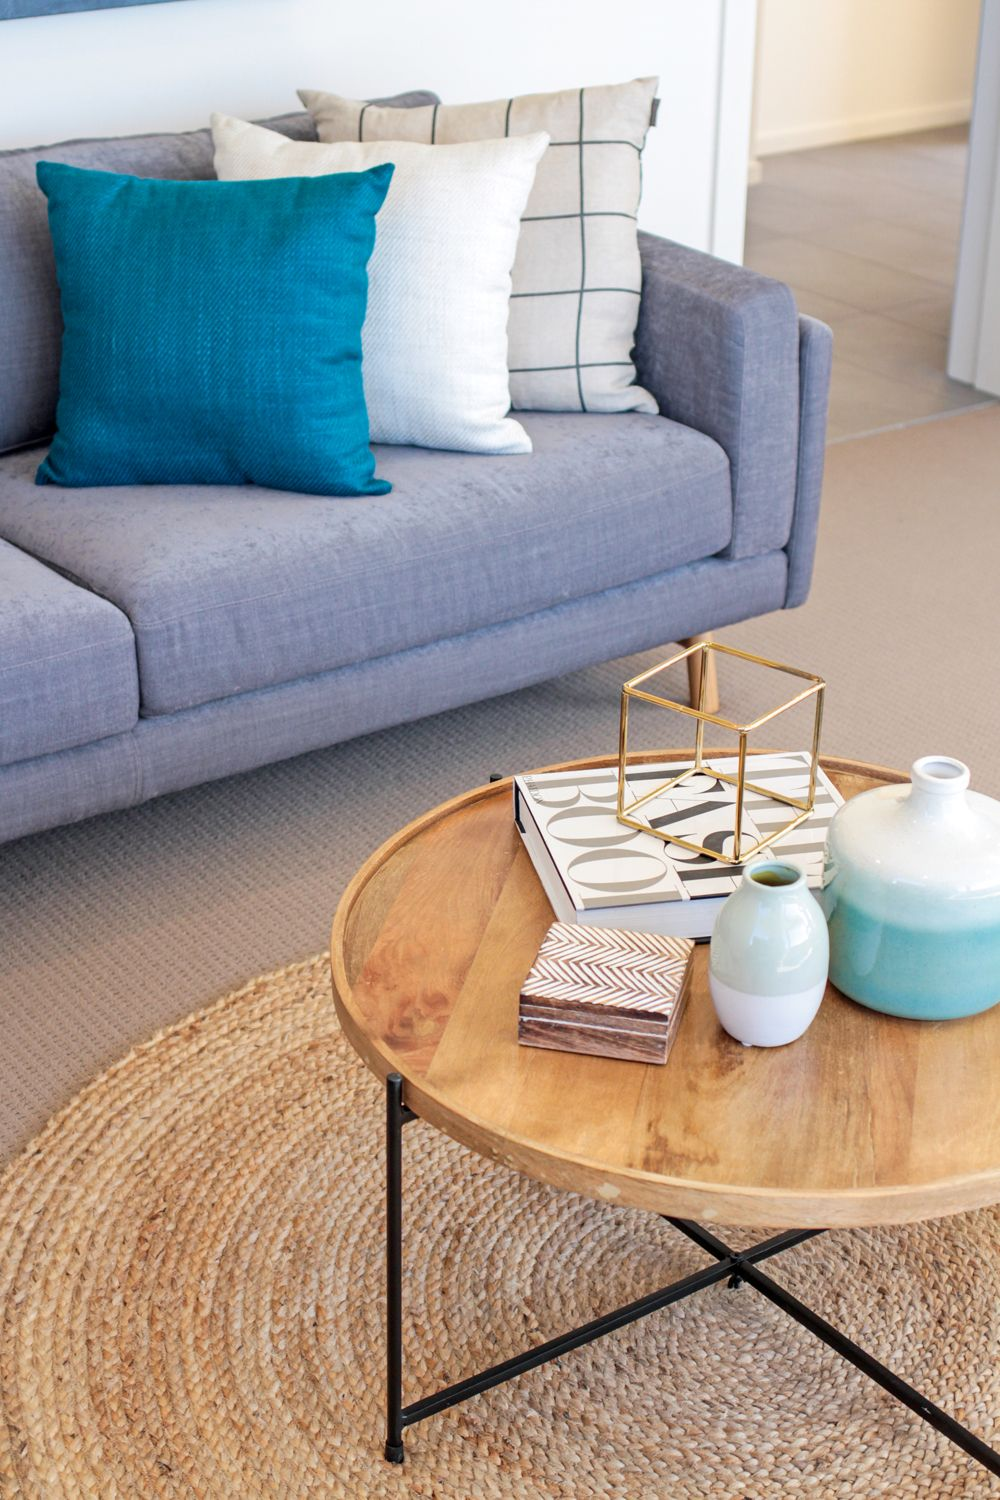 Coffee Table Styling Grey Sofa Scatter Cushions Round Jute Rug